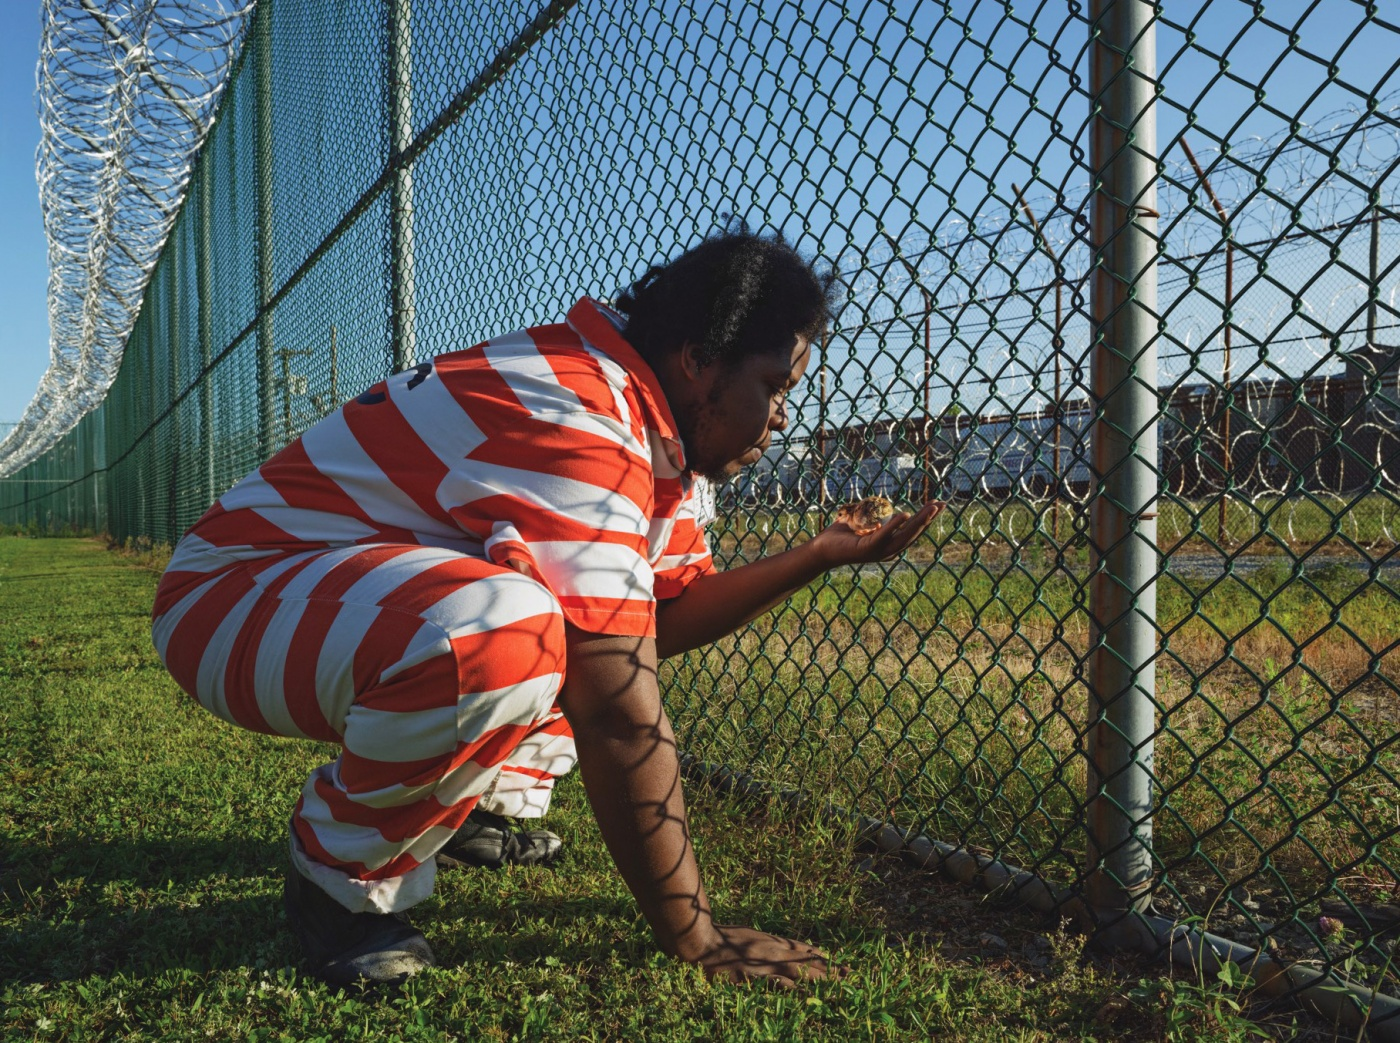 A man wearing a prison uniform squats by a fence, holding a chick in his hand.